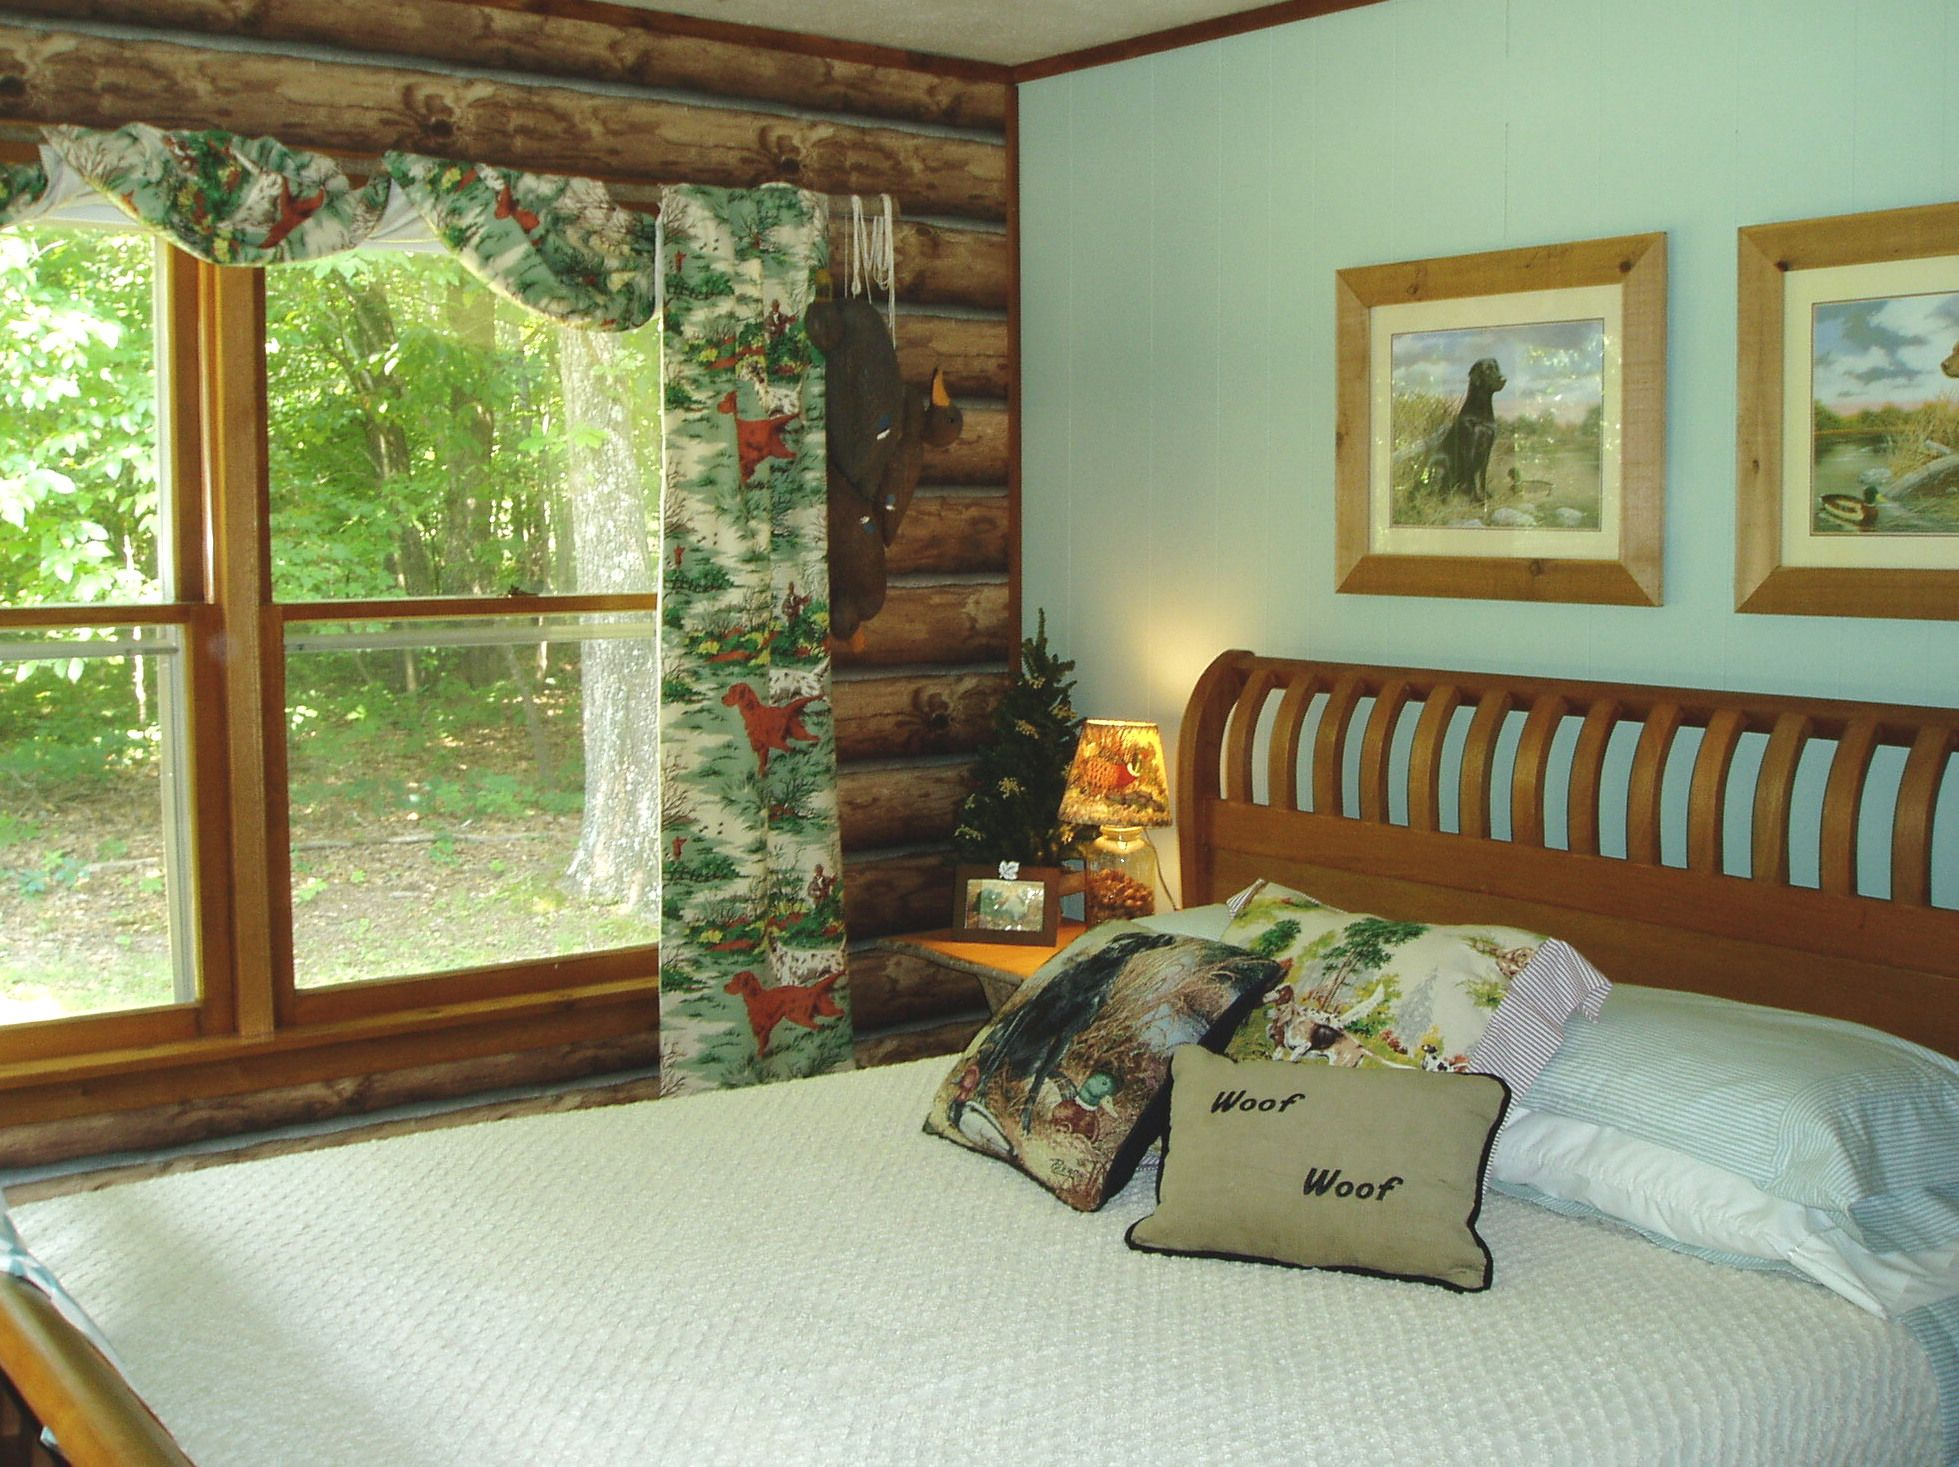 Log Wallpaper Presents A Cleaner And More User Friendly Environment Than The Actual Logs Rustic BedroomsHome